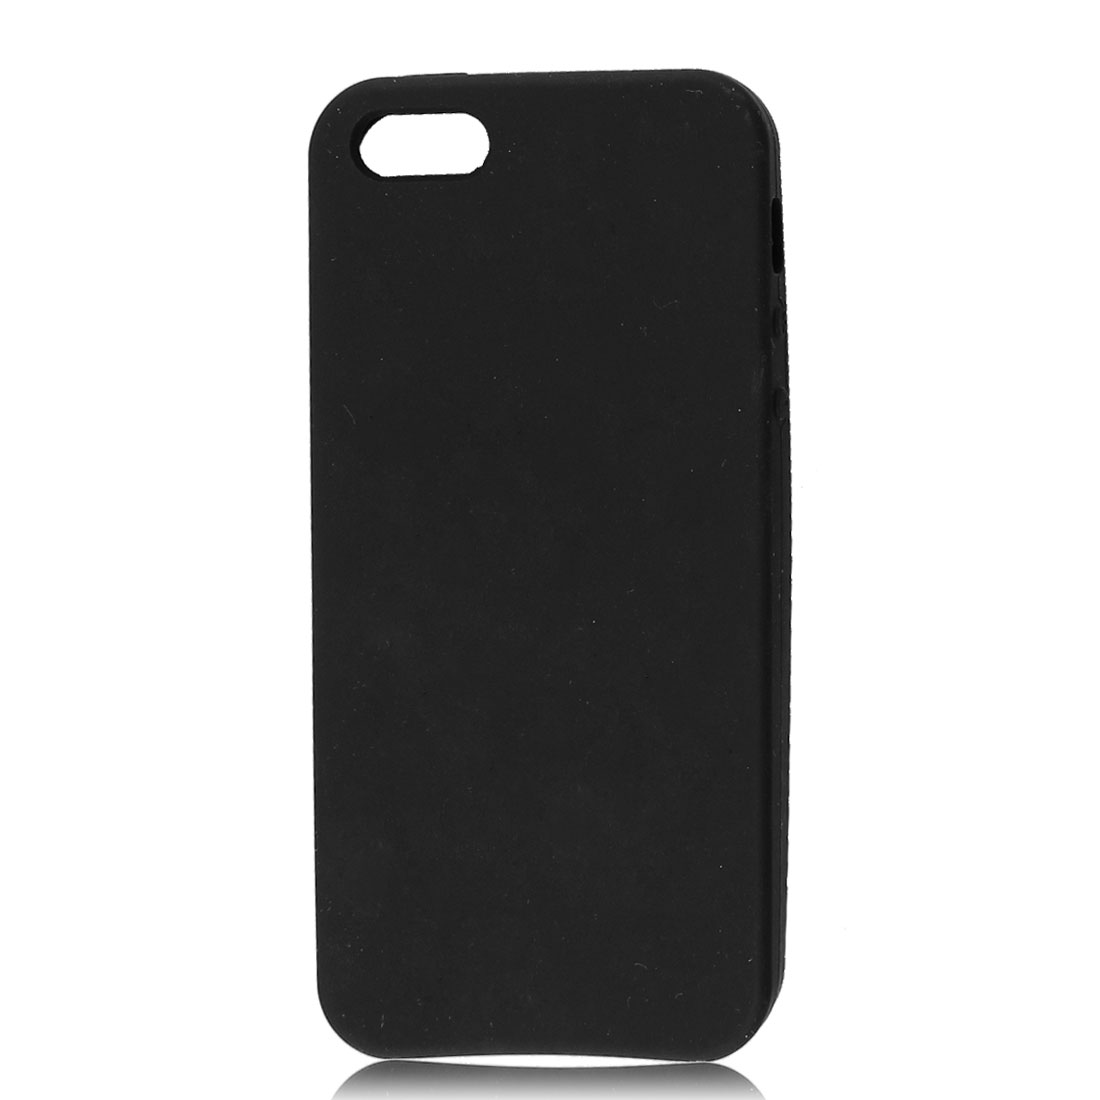 Black Soft Plastic Protective Cover Case for Apple iPhone 5 5G